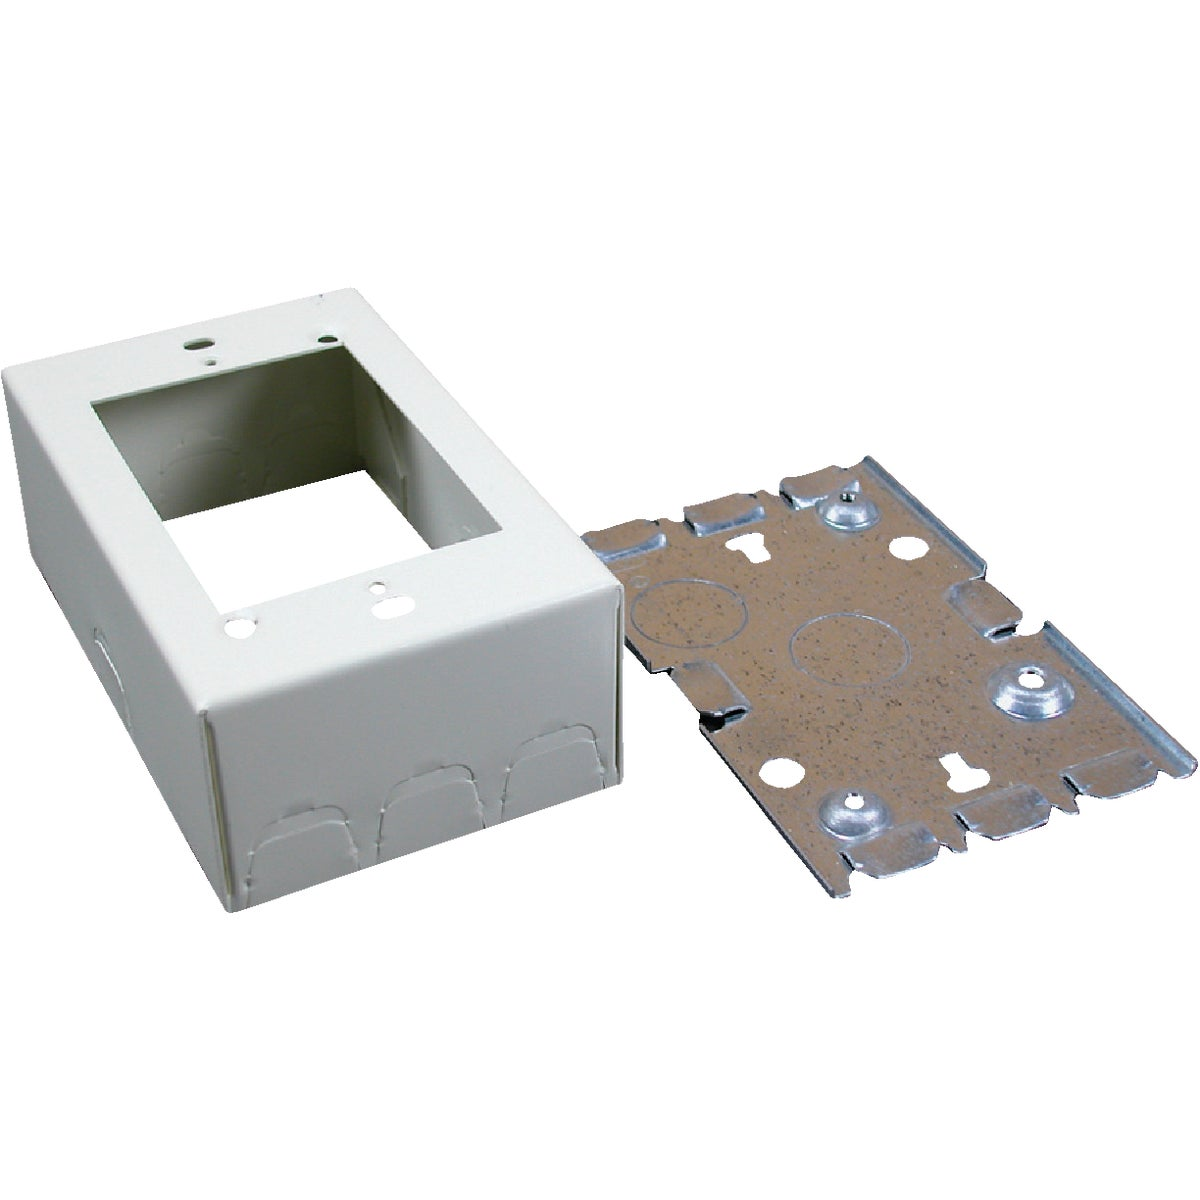 DEEP OUTLET BOX - B35 by Wiremold / Legrand